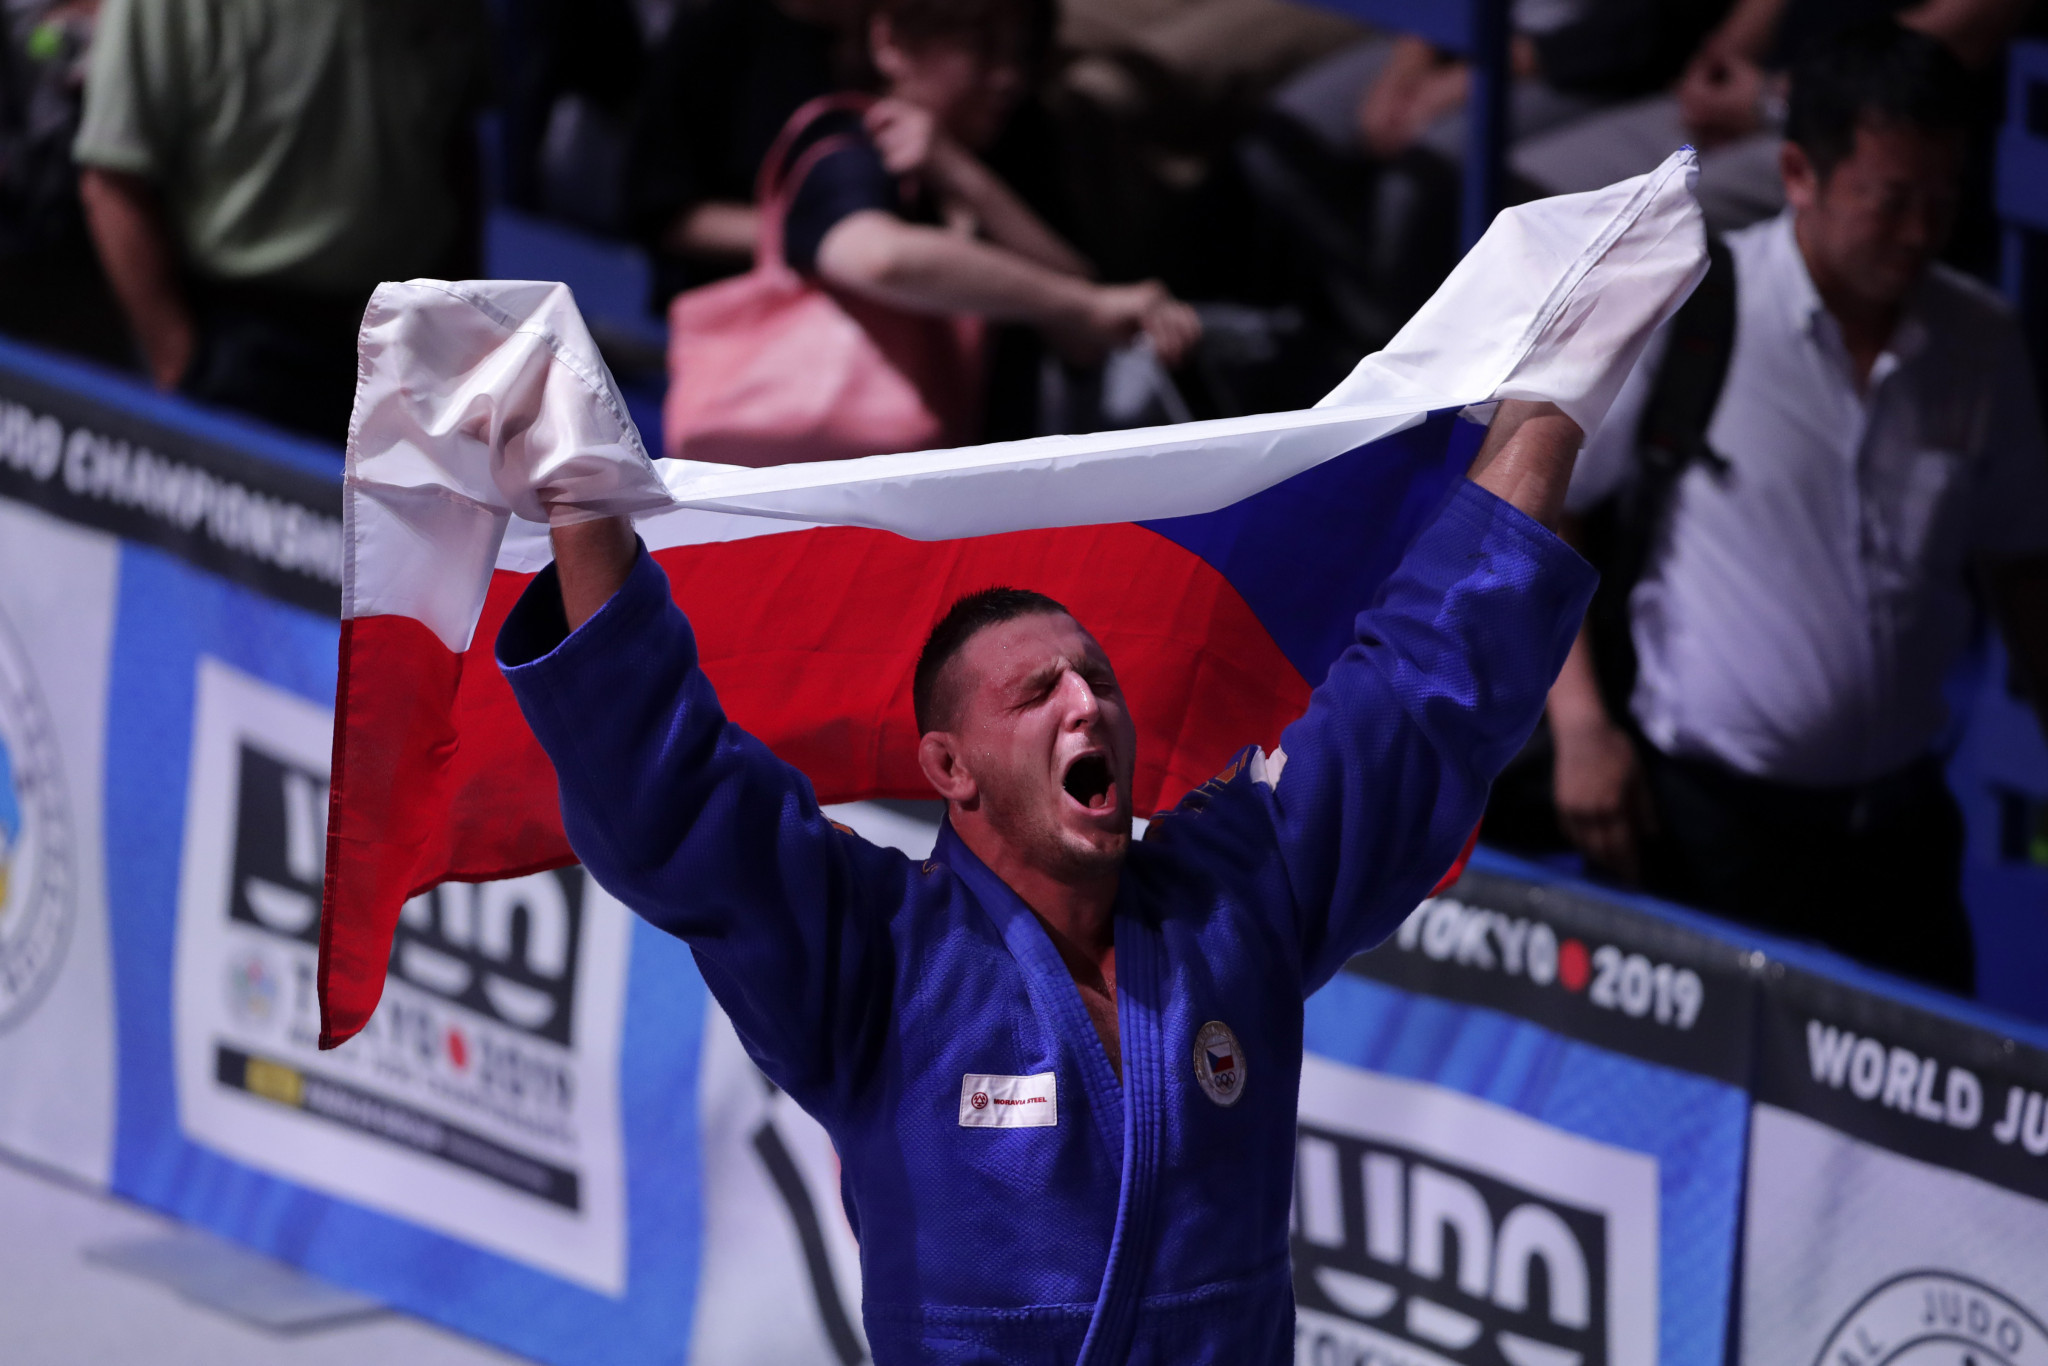 The European Judo Championships in the Czech Republic had already been disrupted ©Getty Images